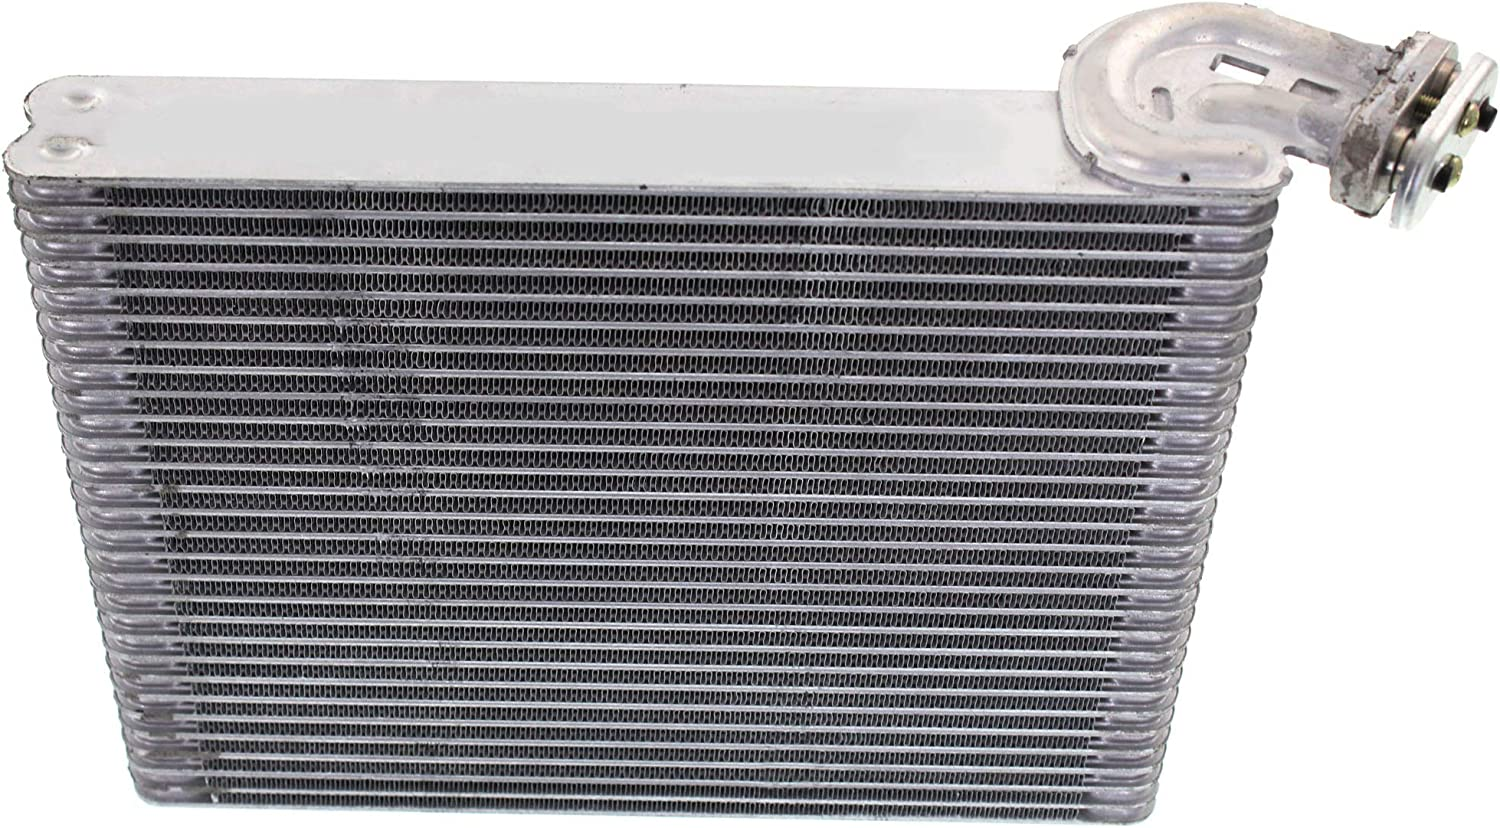 New A//C AC Evaporator for Toyota Yaris Scion xD 2008-2014 8850152103